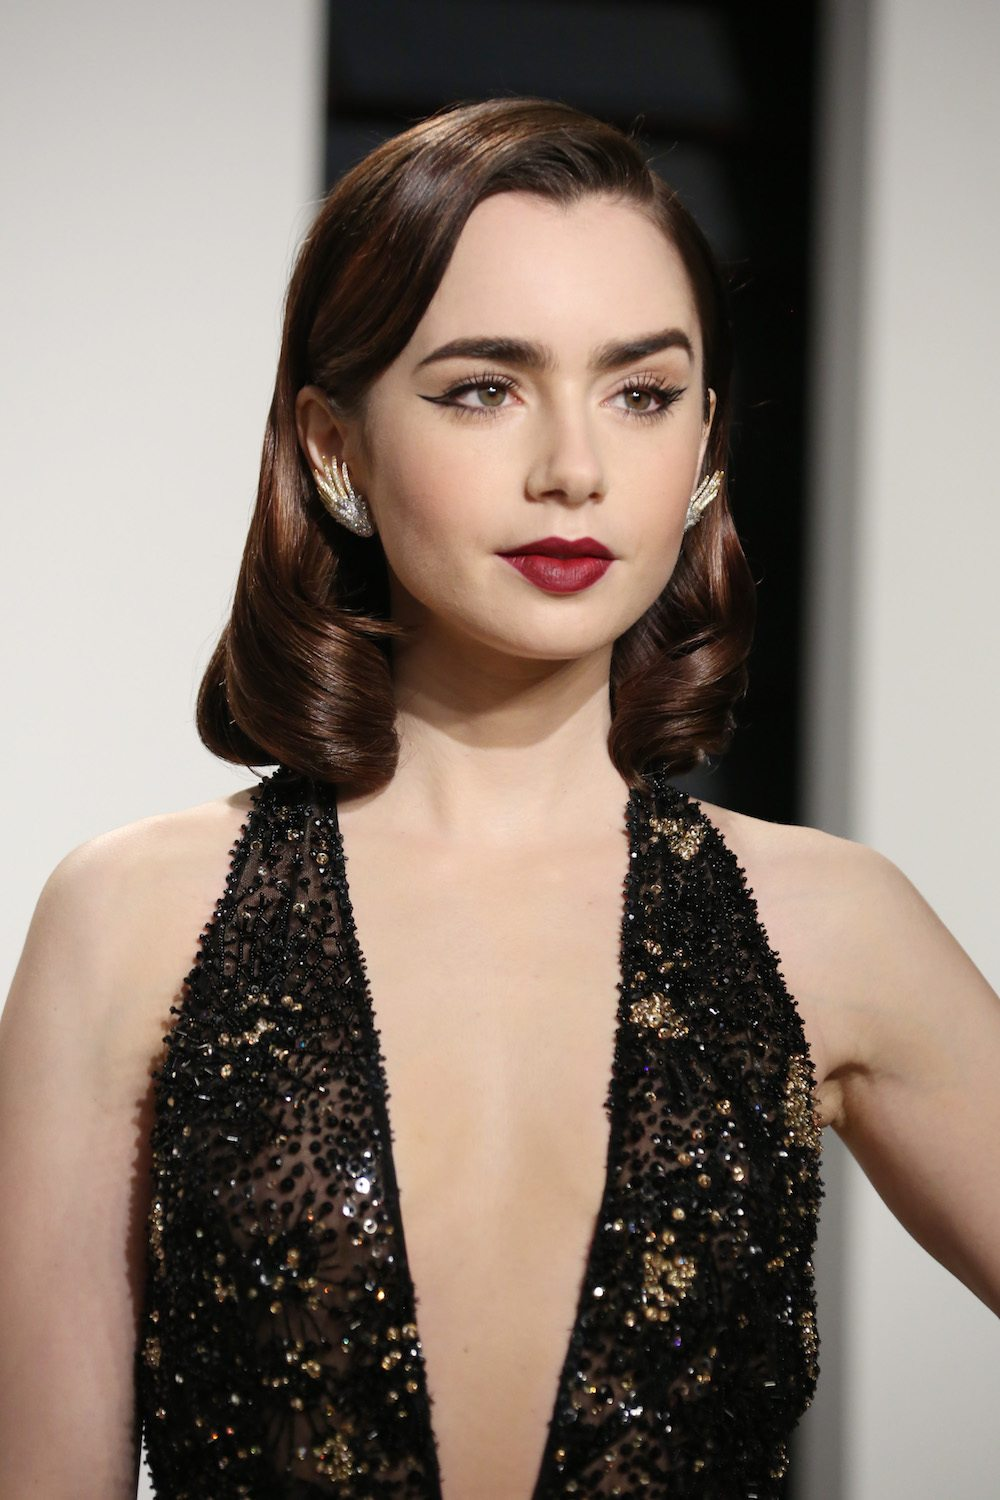 Rambut Hollywood curls dari Lily Collins.